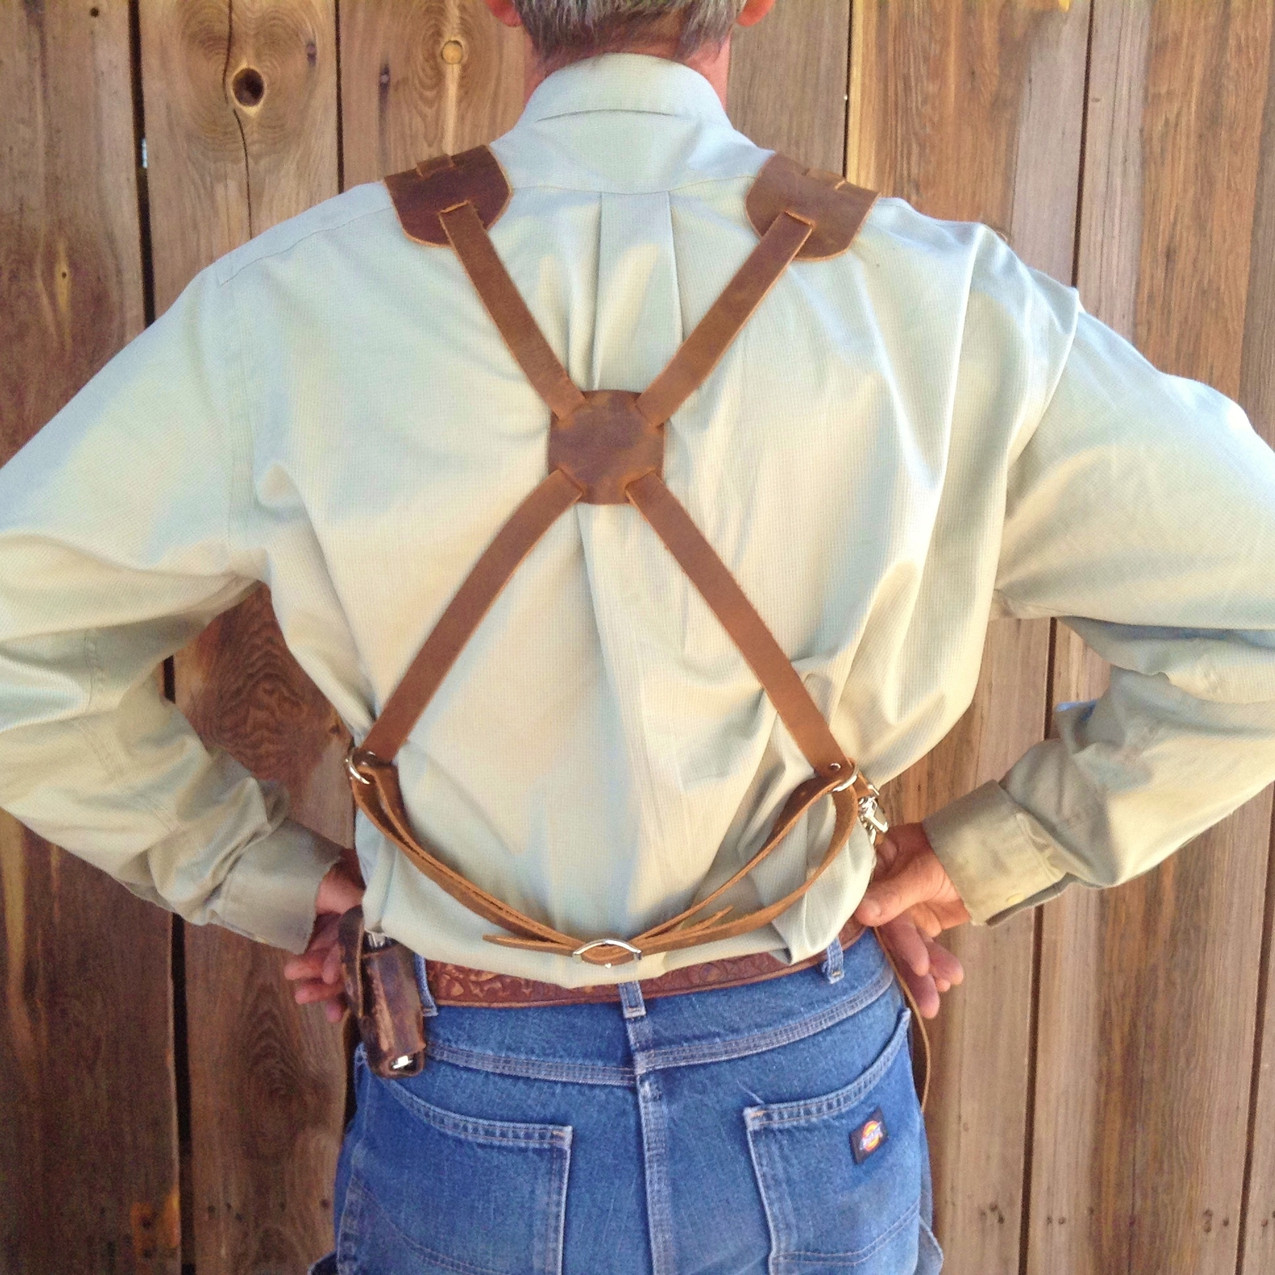 On the X system, he weight of the leather apron is supported mostly from the shoulders. The square piece is adjustable changing how the fit feels.